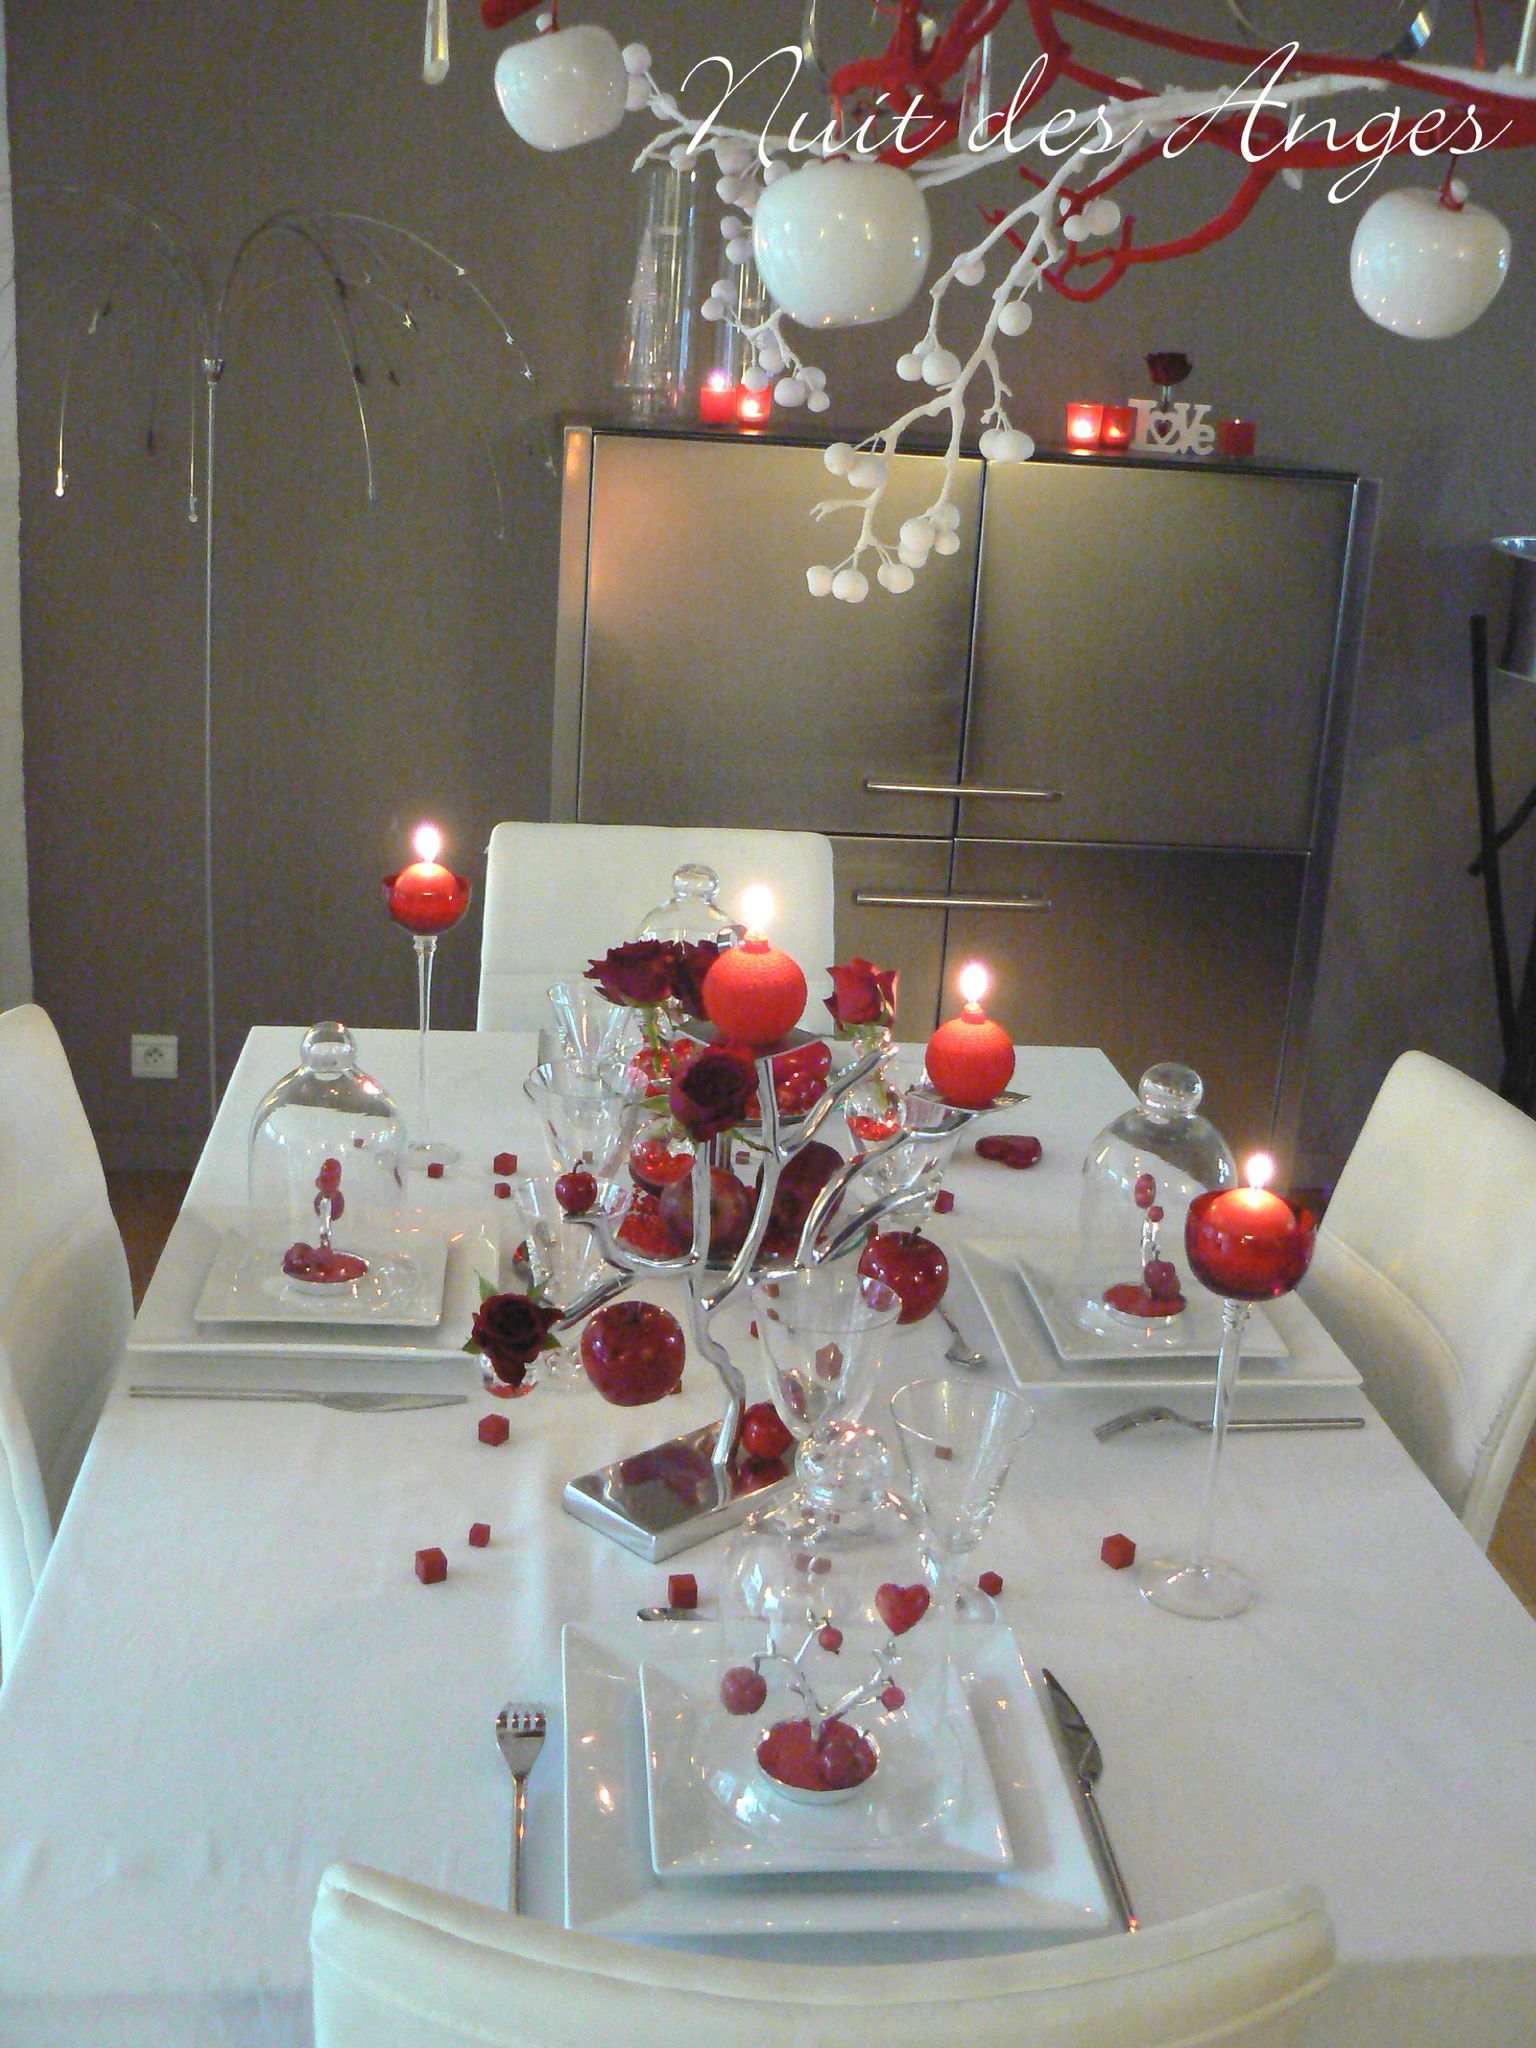 D coration de table rouge pomme d 39 amour nuit des anges for Decoration porte st valentin